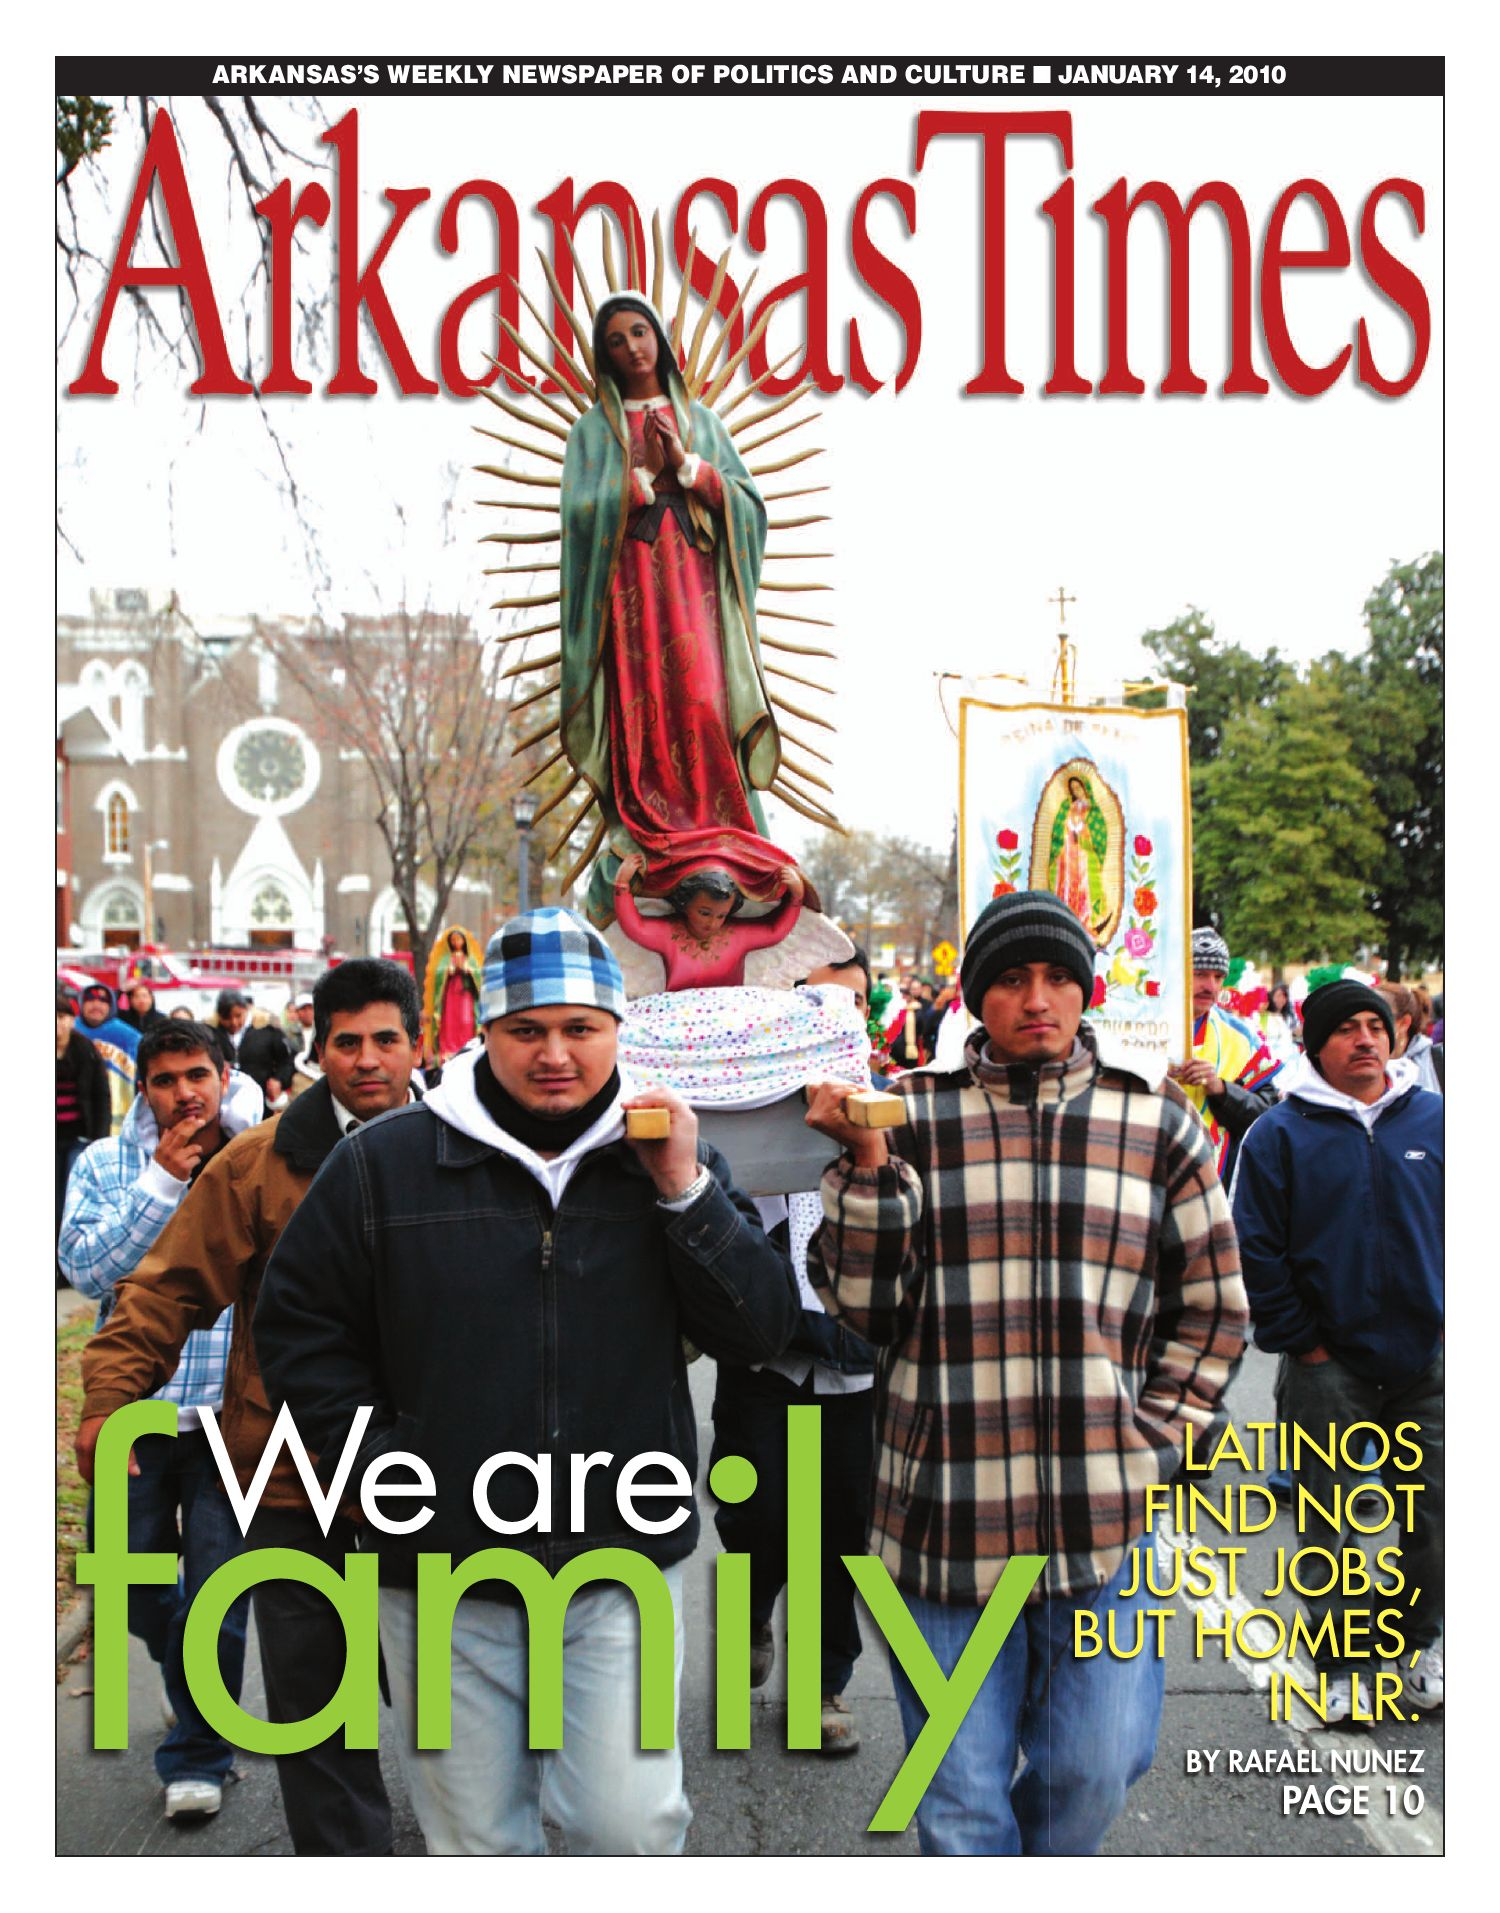 Arkansas Times Week Of January 14 2010 By